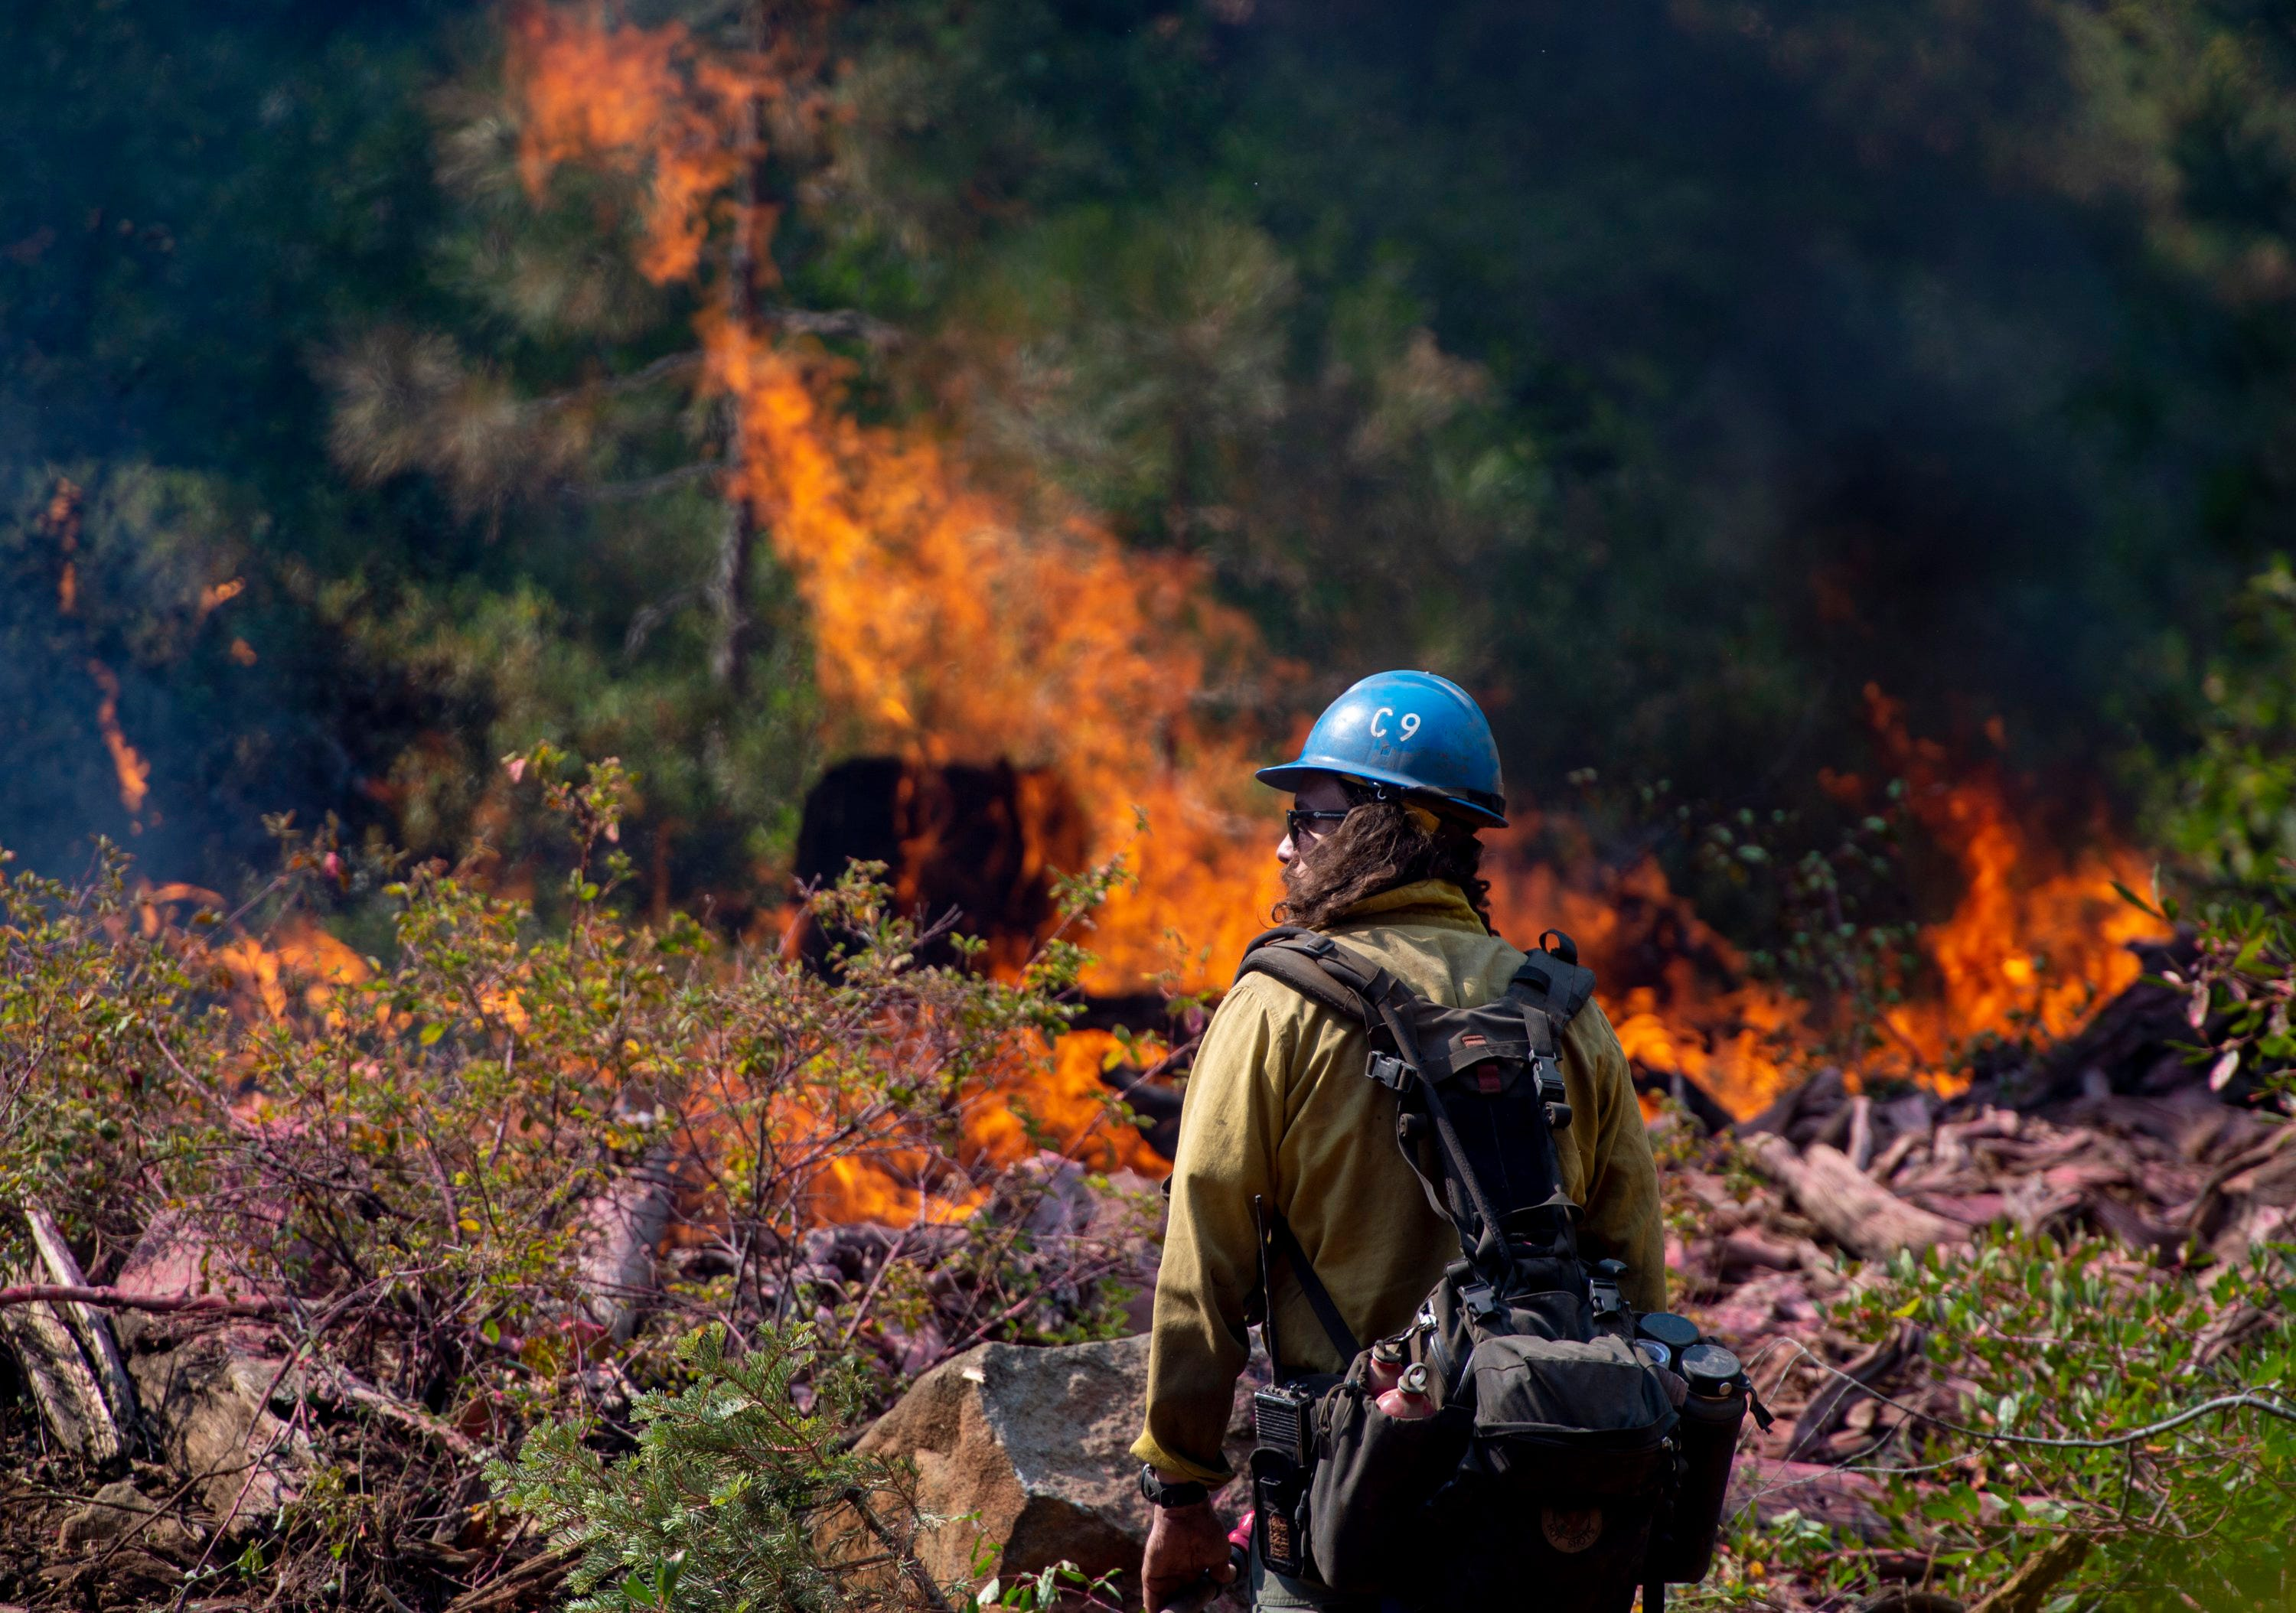 Tyler Medders of the Susanville Hot Shots keeps an eye out for embers at the North Fire near the North Fork Campgrounds in Placer County on Tuesday, September 4, 2018.